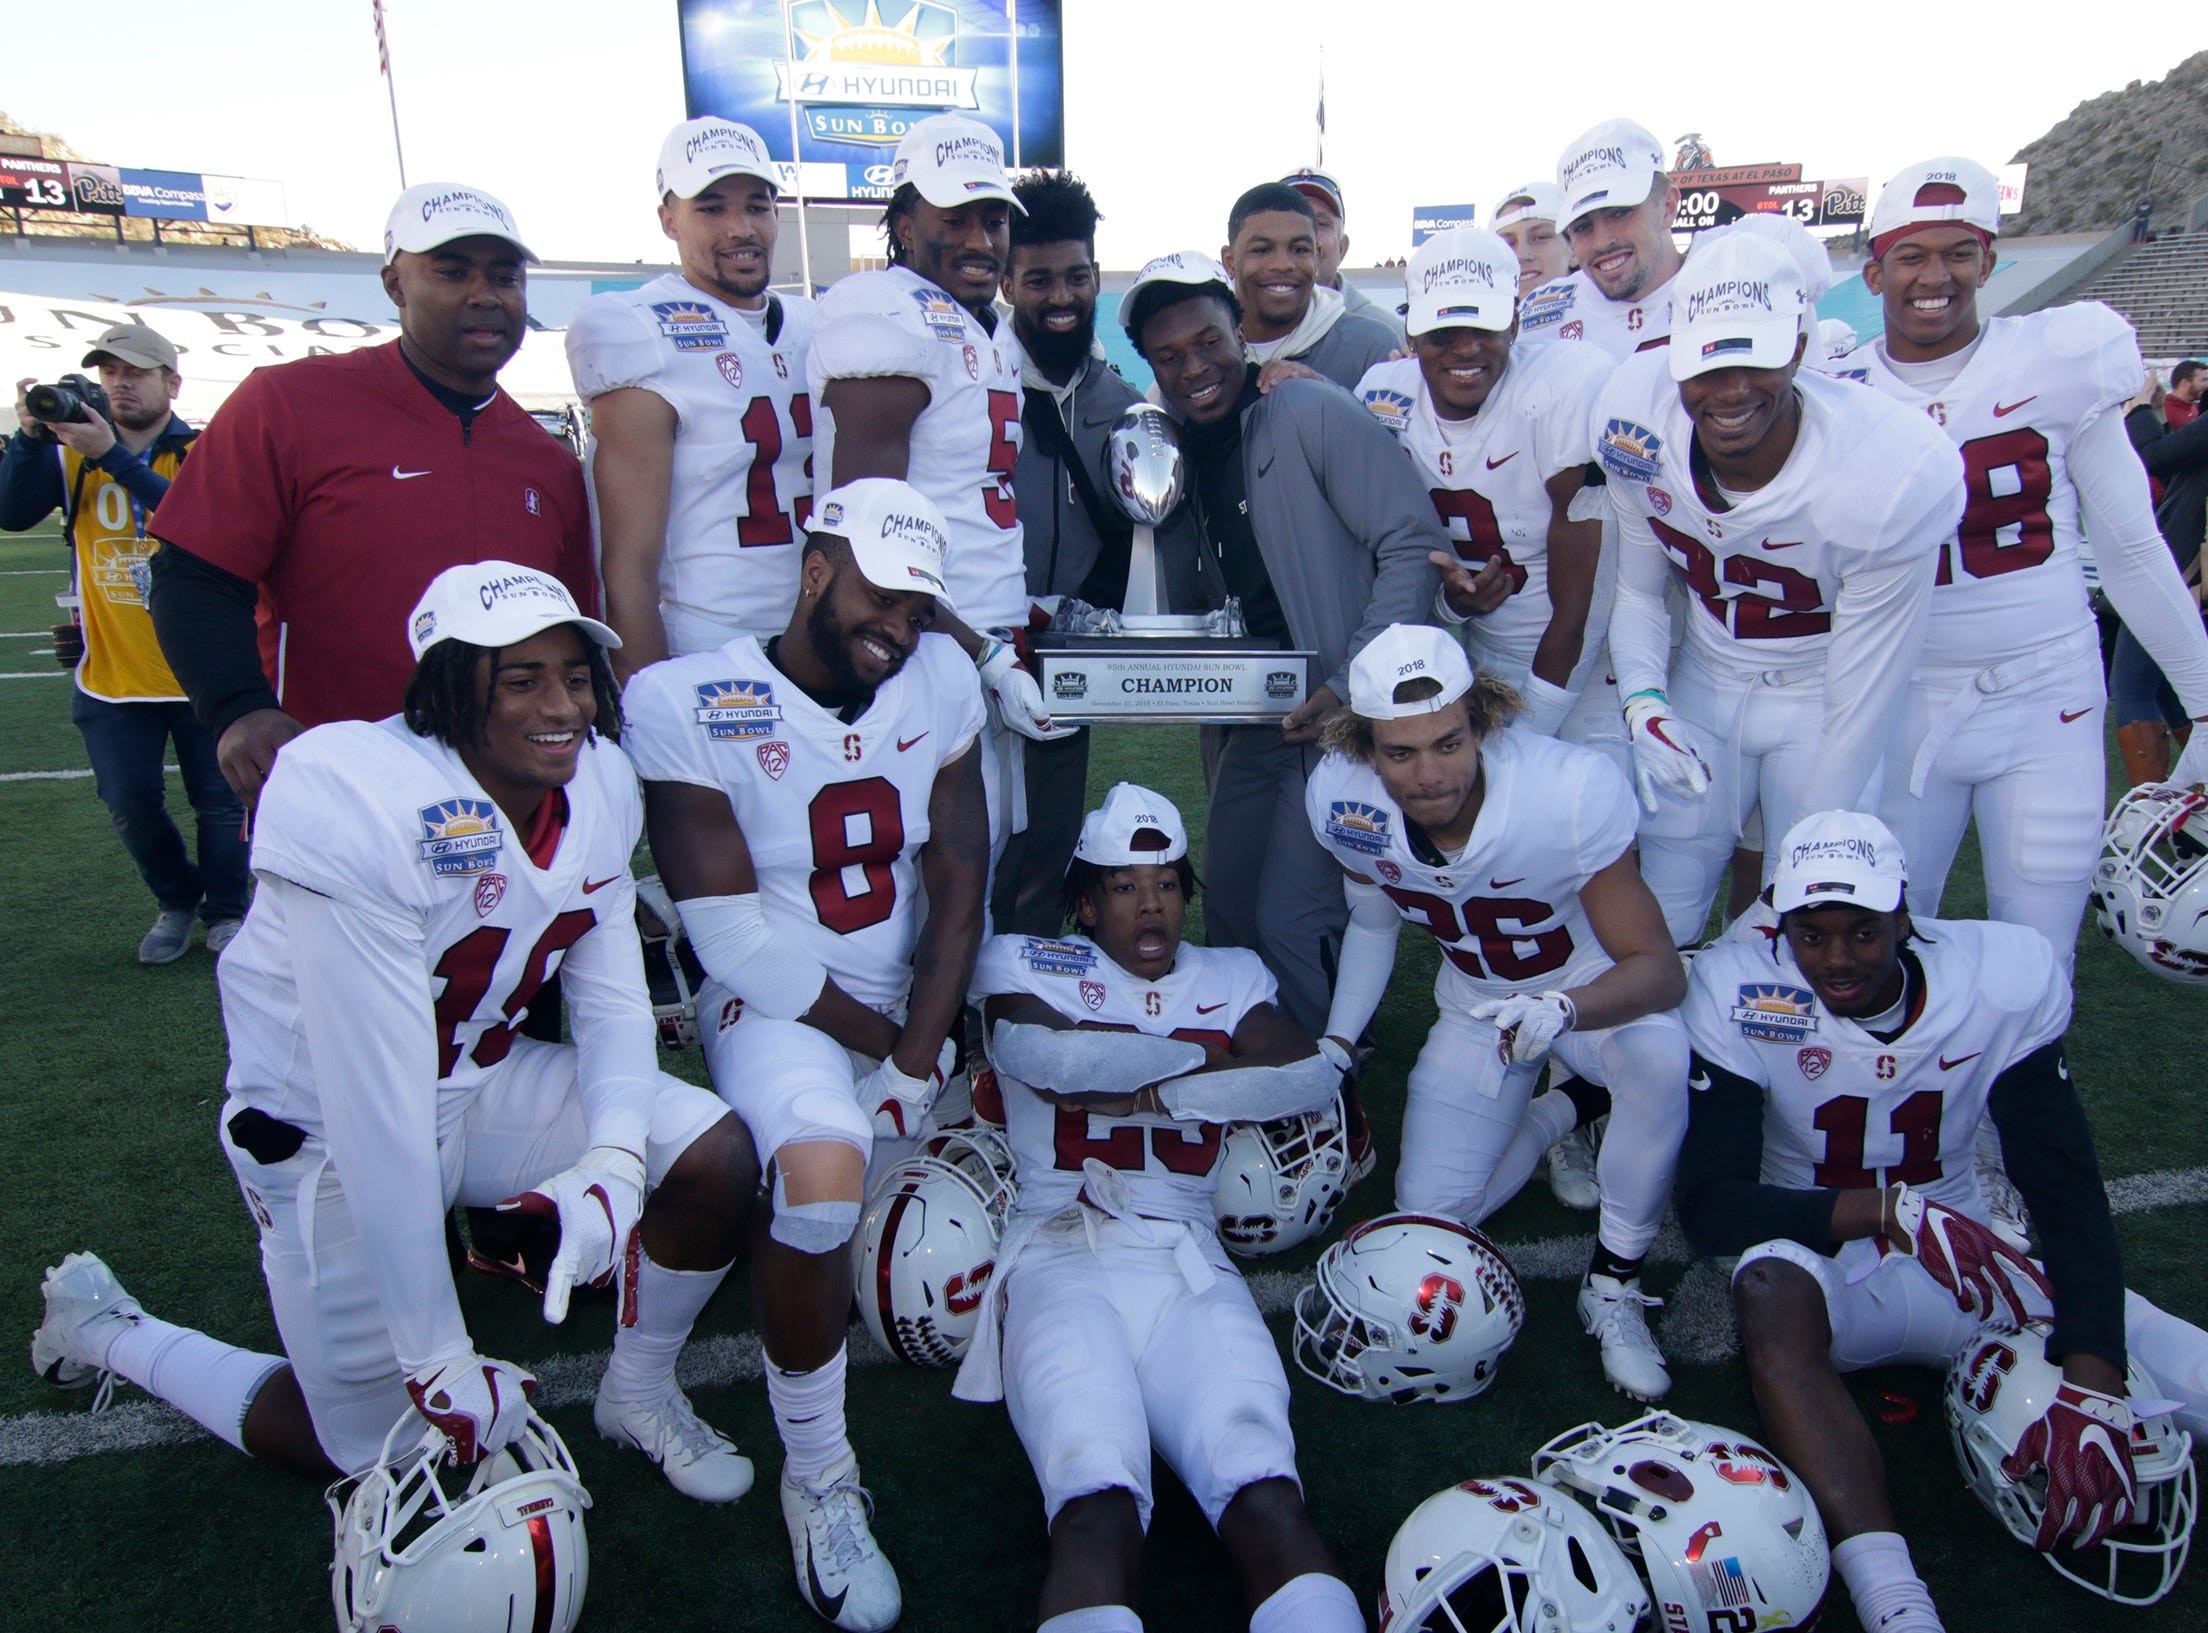 Members of the Stanford football team hold the 85th Hyundai Sun Bowl Championship trophy after defeating the Pitt Panthers 14-13.